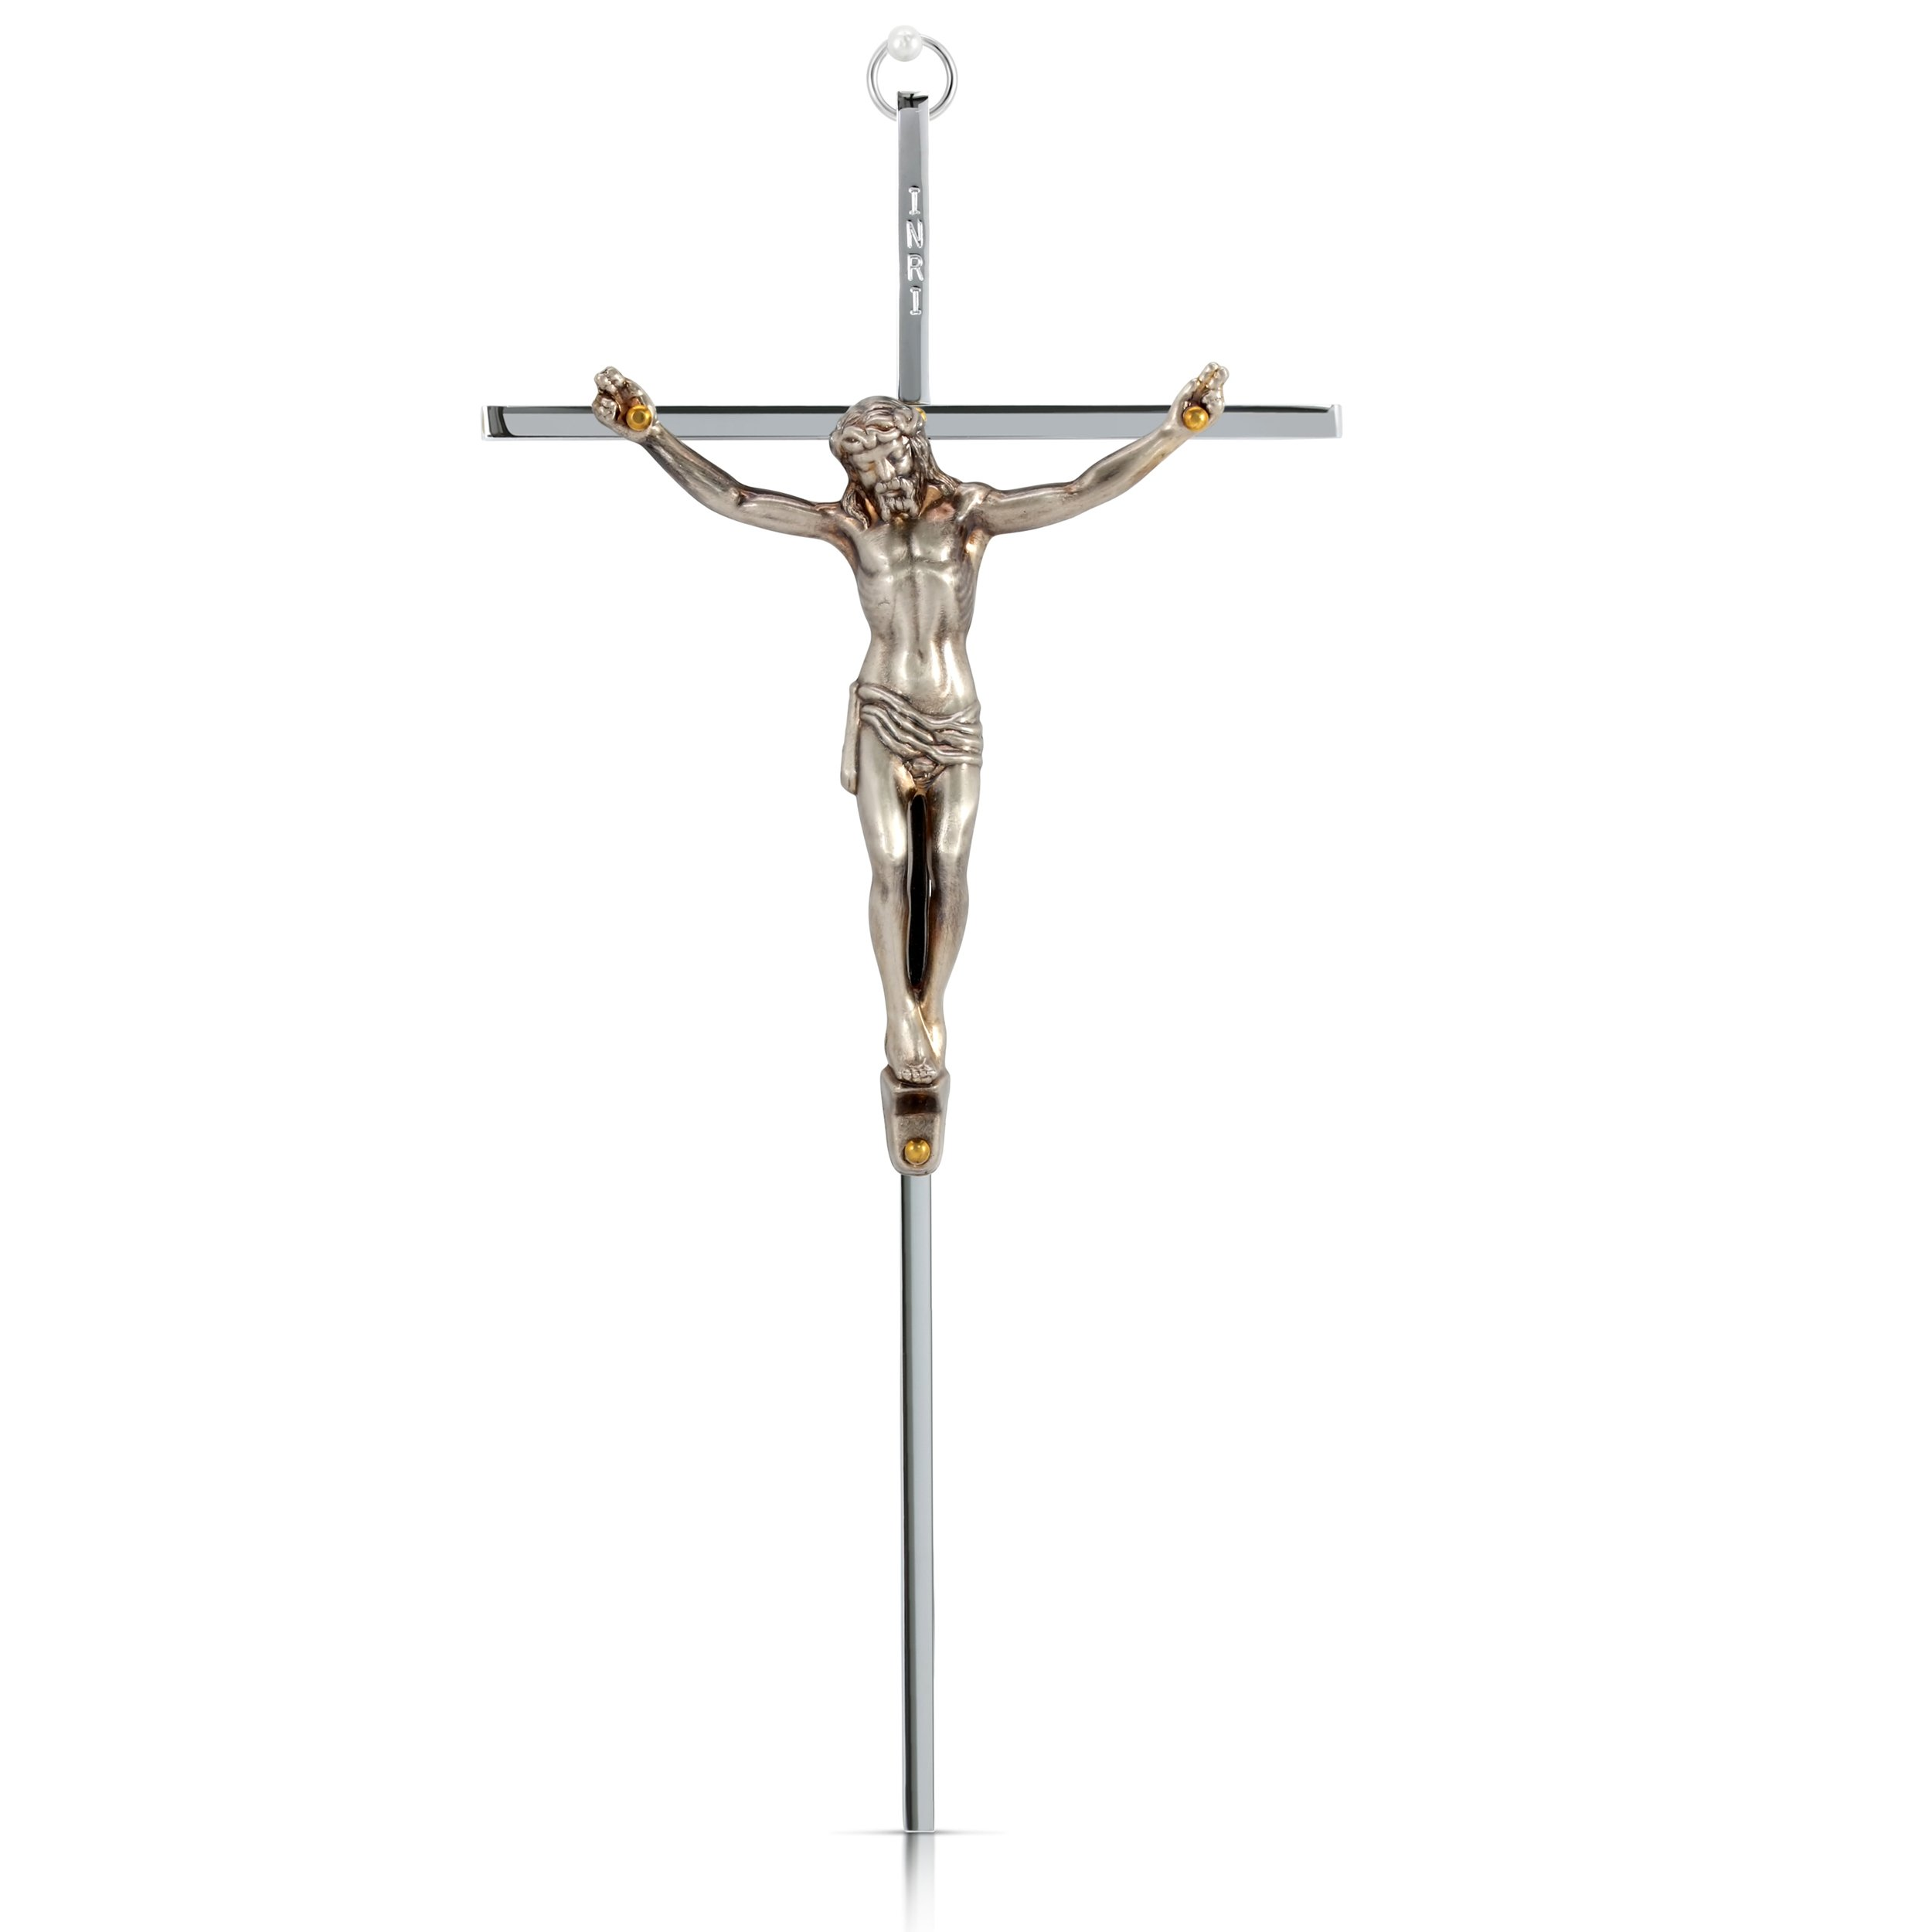 SmartChoice Crucifix - Solid Brass-Antique Silver Polished Wall Cross -10'' - Packed In Gift Box - Decorative Crosses - Made in USA (Antique Silver)